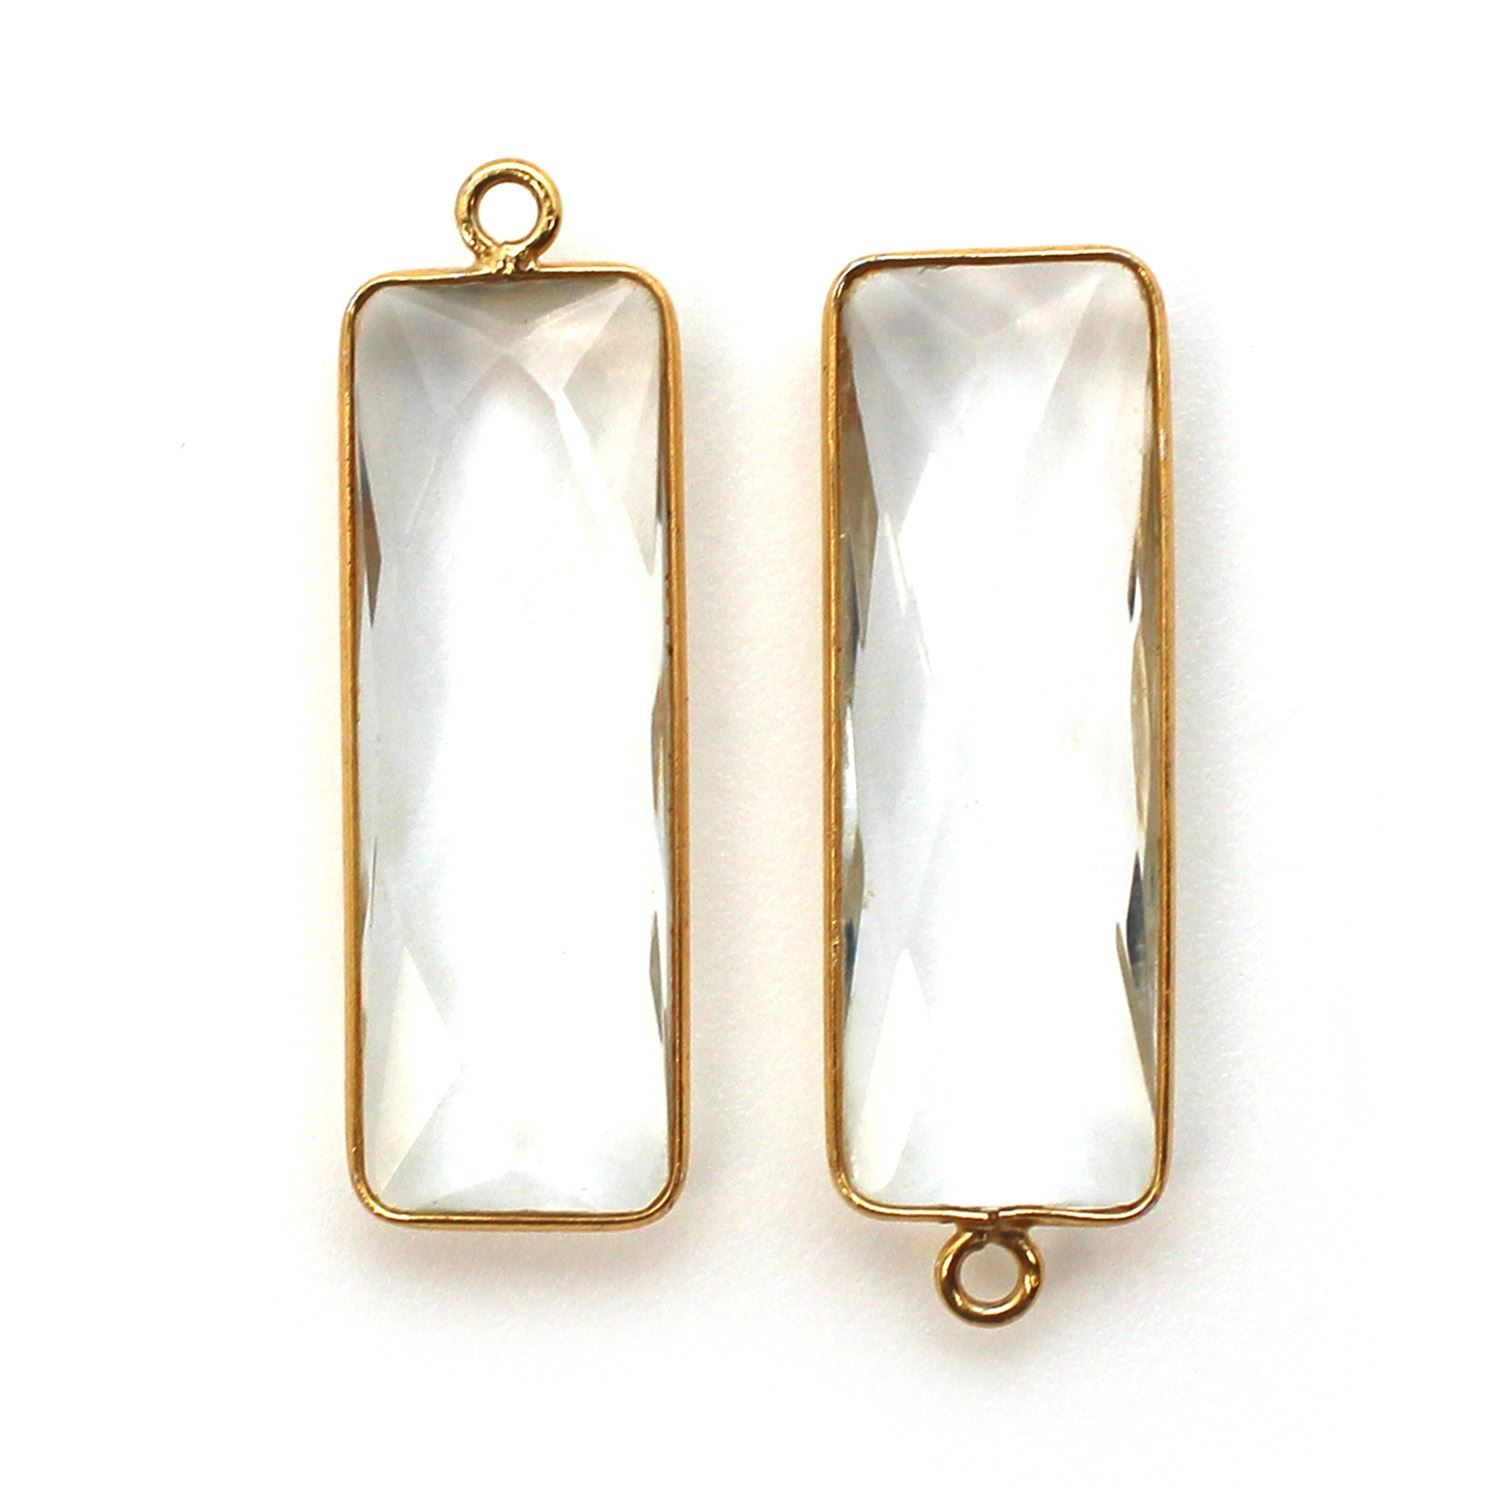 Bezel Charm Pendant-Vermeil Charm-Gold Plated -Elongated Rectangle Shape- Crystal Quartz - April Birthstone -34 by 11mm (Sold per 2 pieces)